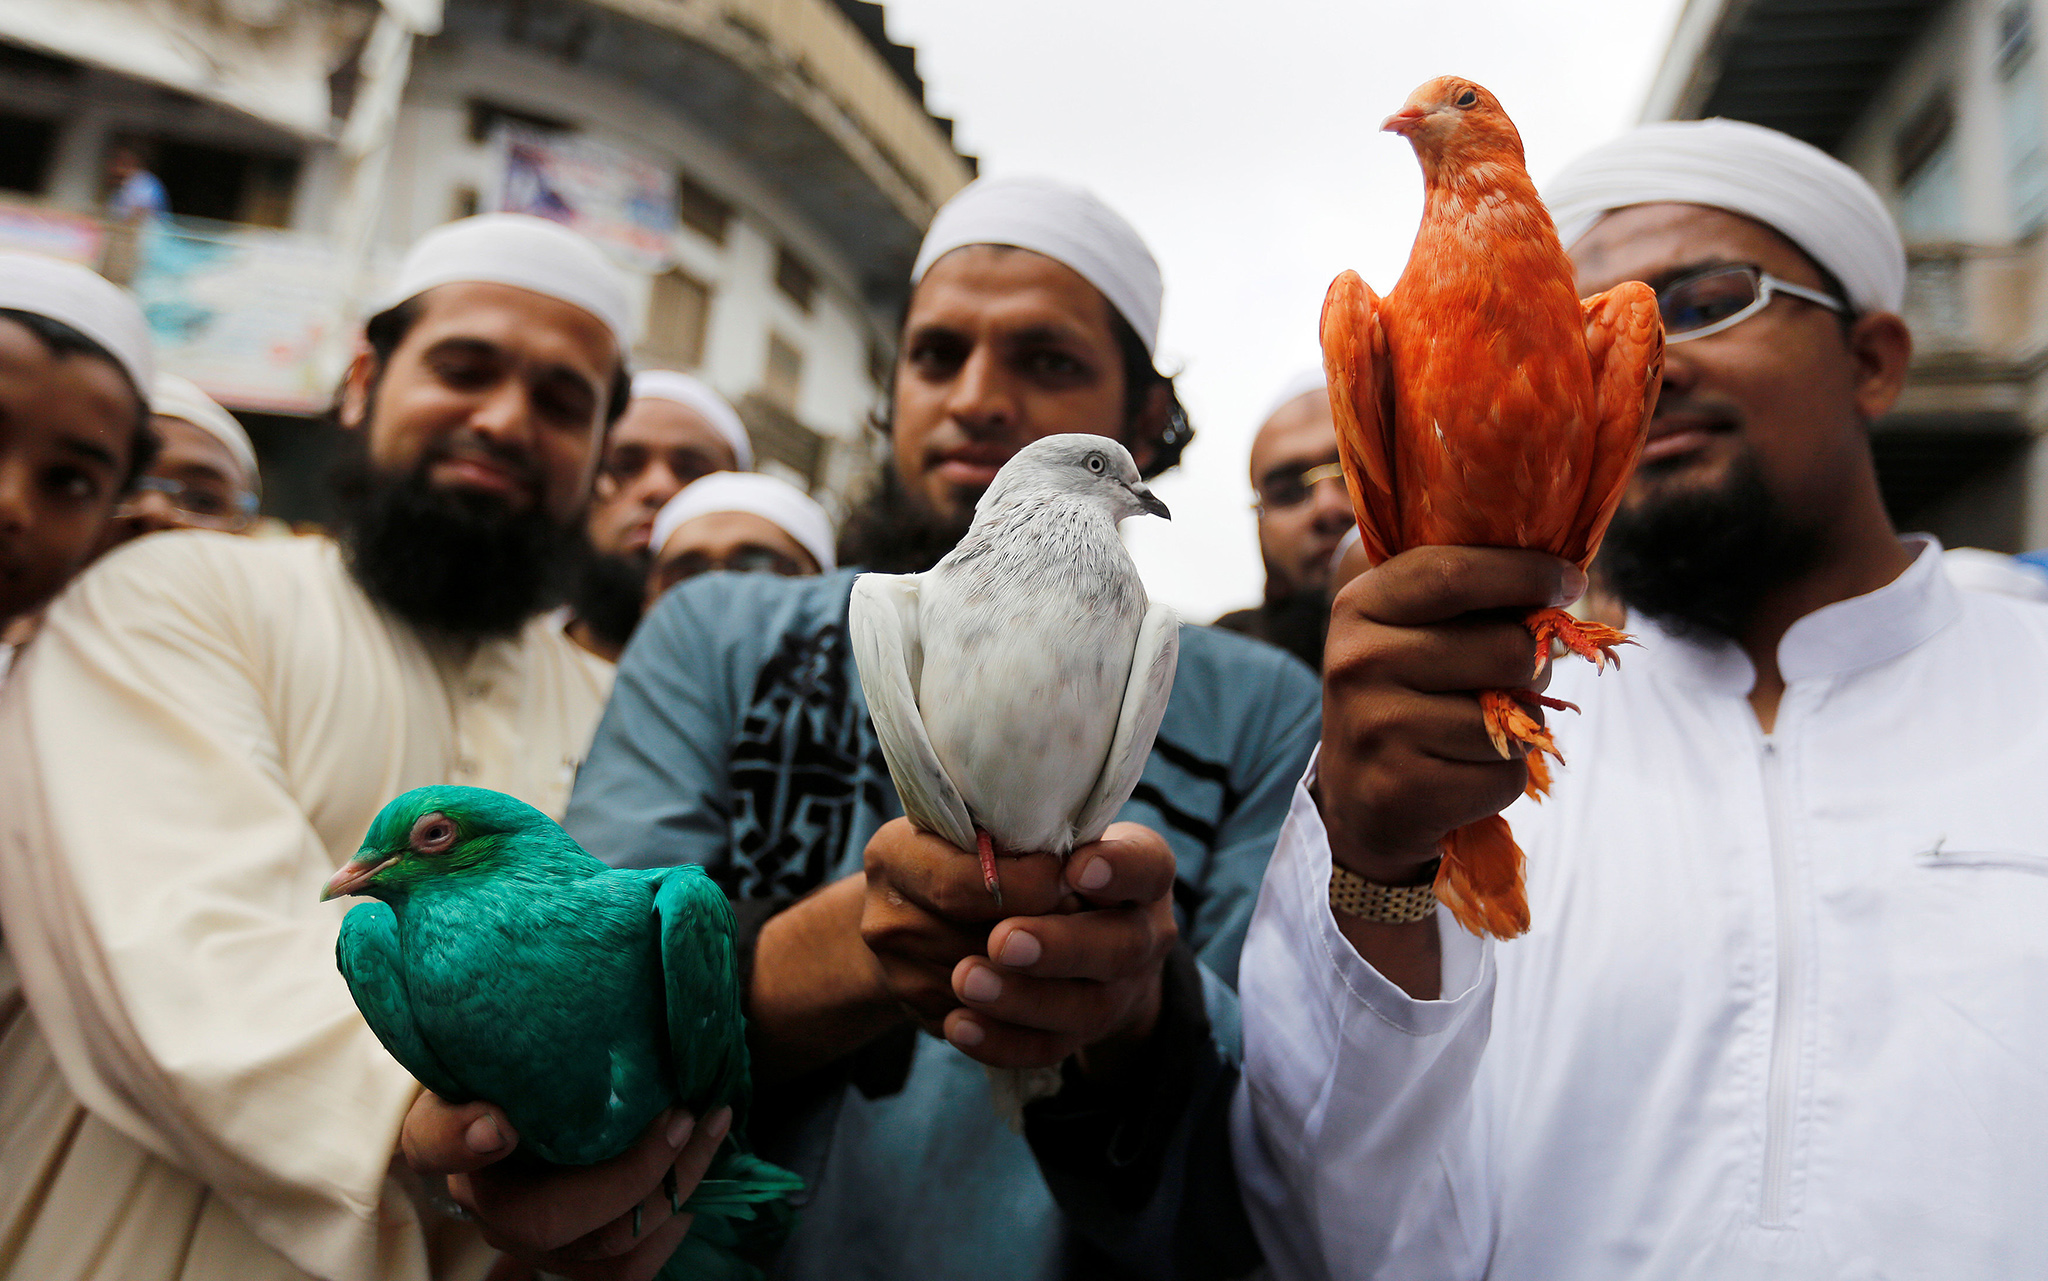 Muslims hold pigeons dyed in the colours of the Indian flag, during a march to celebrate India's Independence Day in Ahmedabad, India